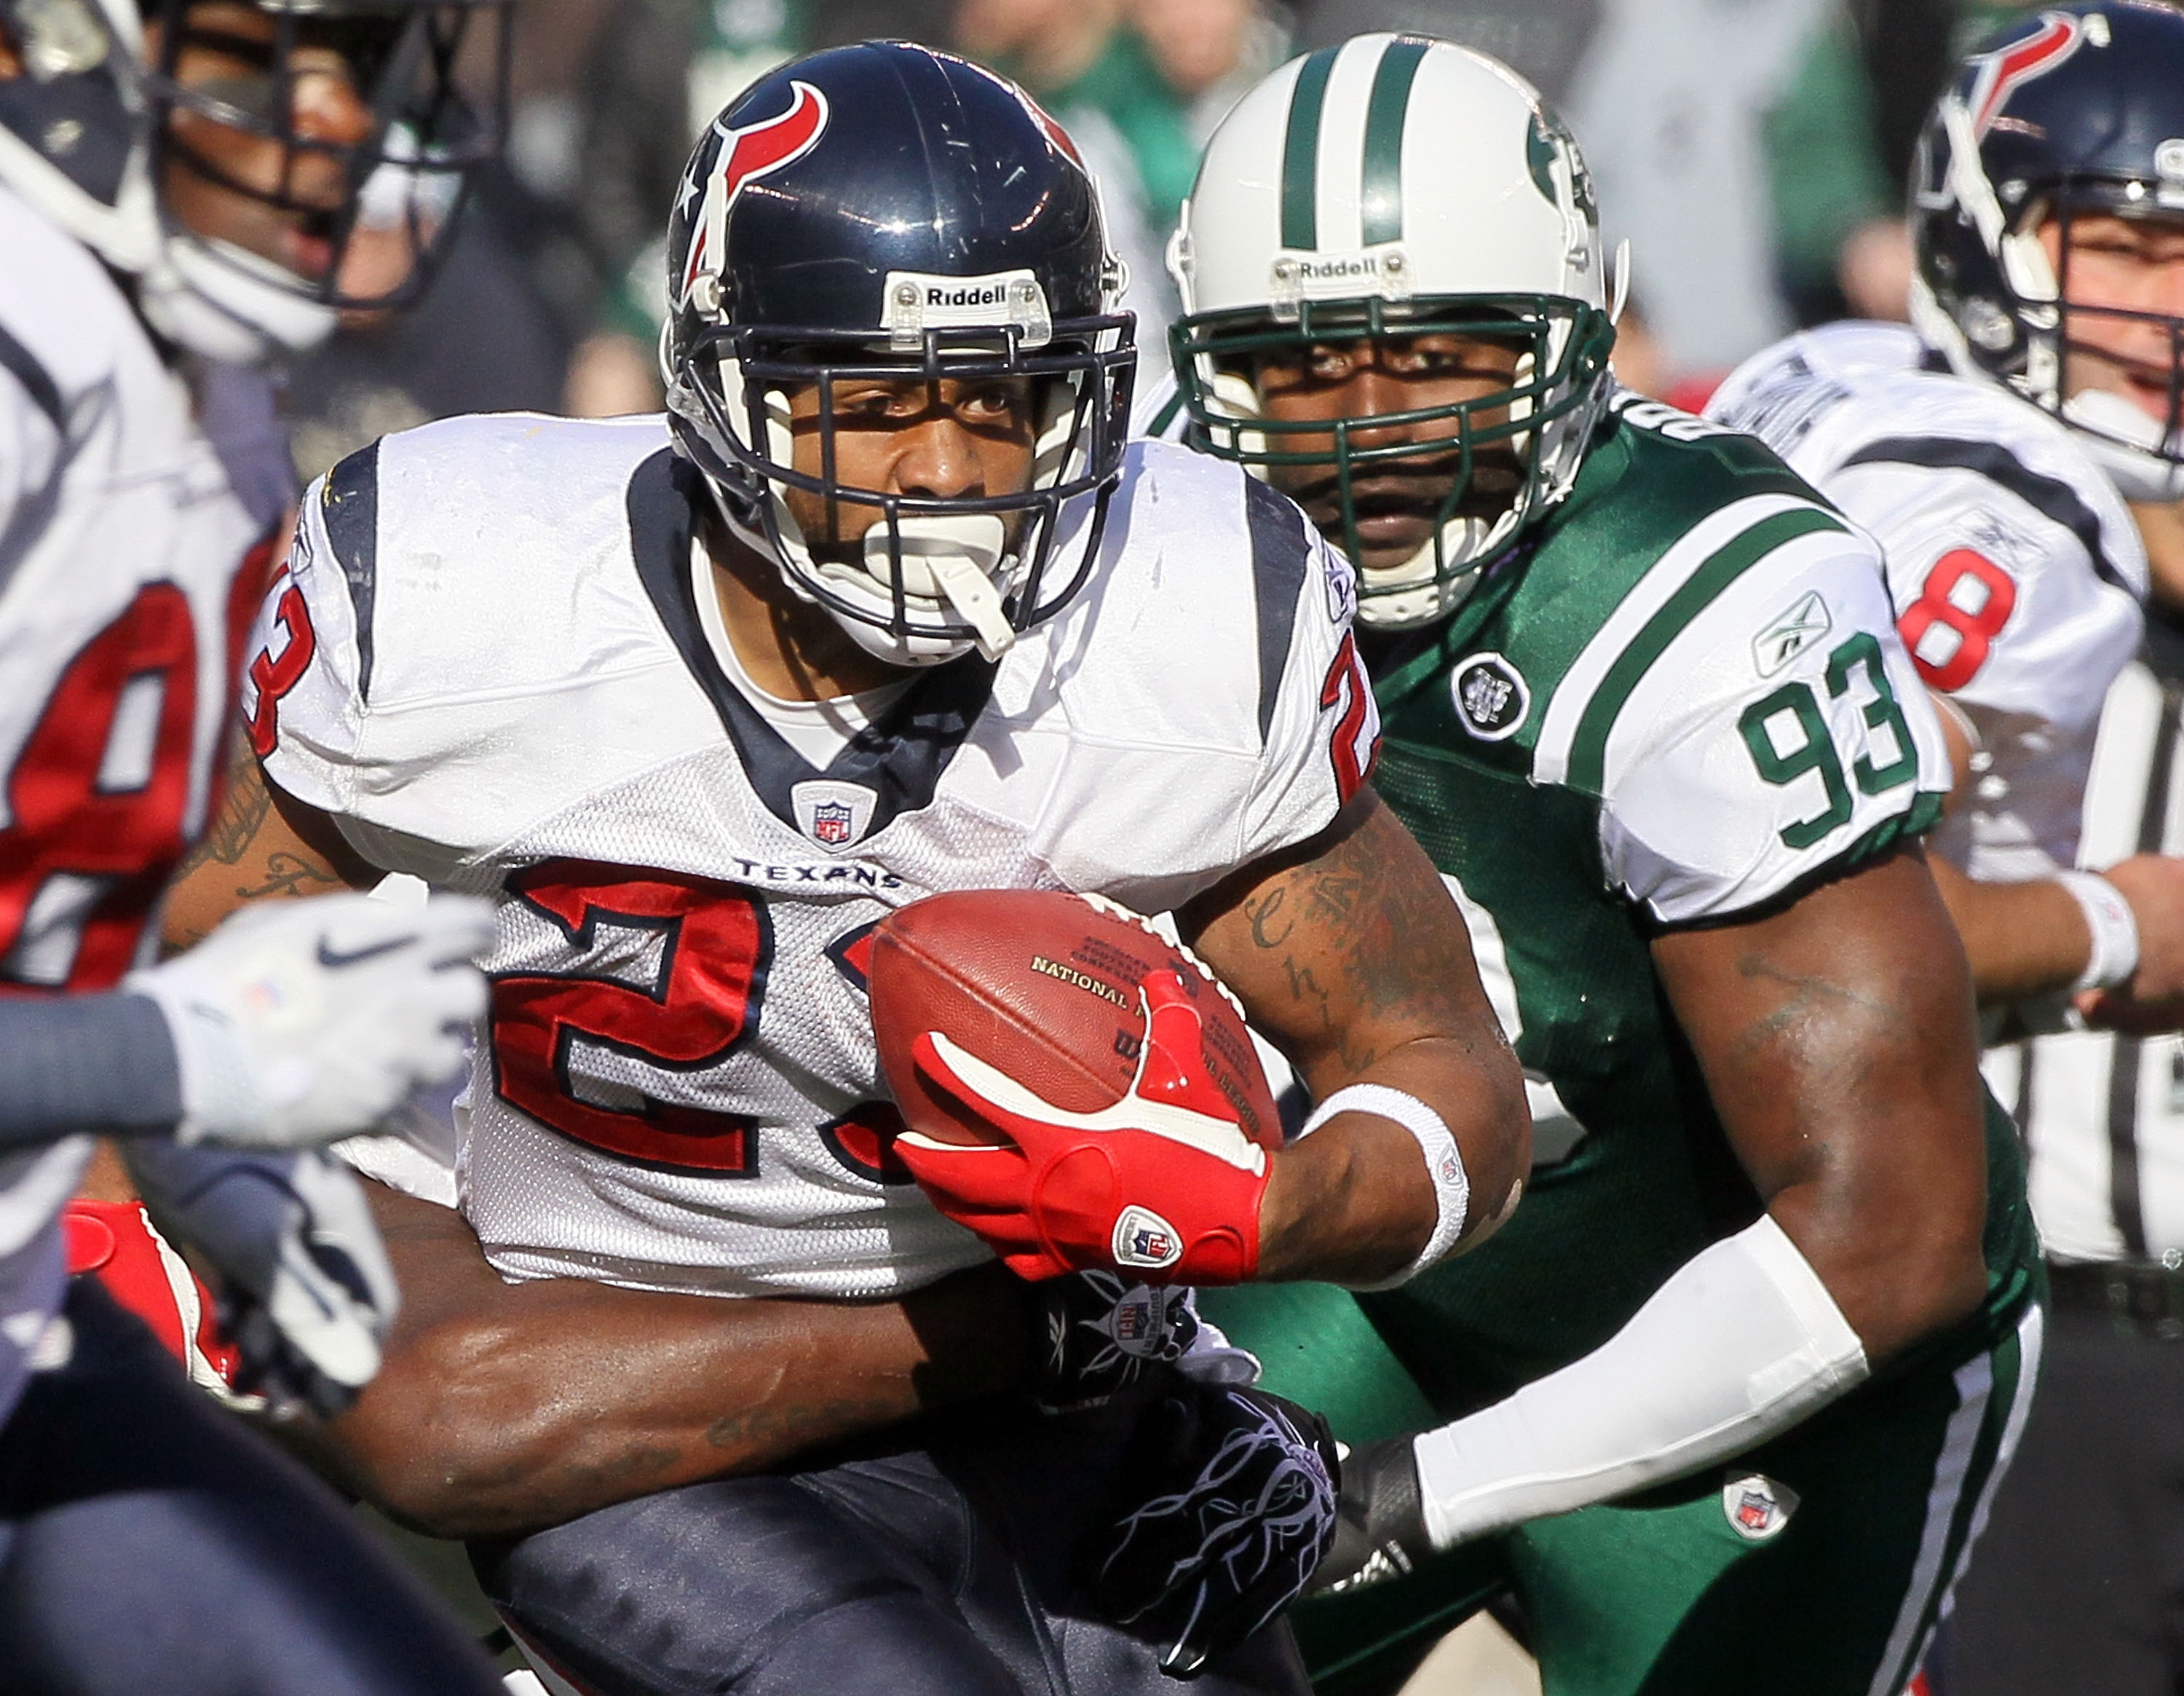 EAST RUTHERFORD, NJ - NOVEMBER 21:  Arian Foster #23 of the Houston Texans runs the ball against Trevor Pryce #93 of the New York Jets on November 21, 2010 at the New Meadowlands Stadium in East Rutherford, New Jersey.  (Photo by Jim McIsaac/Getty Images)